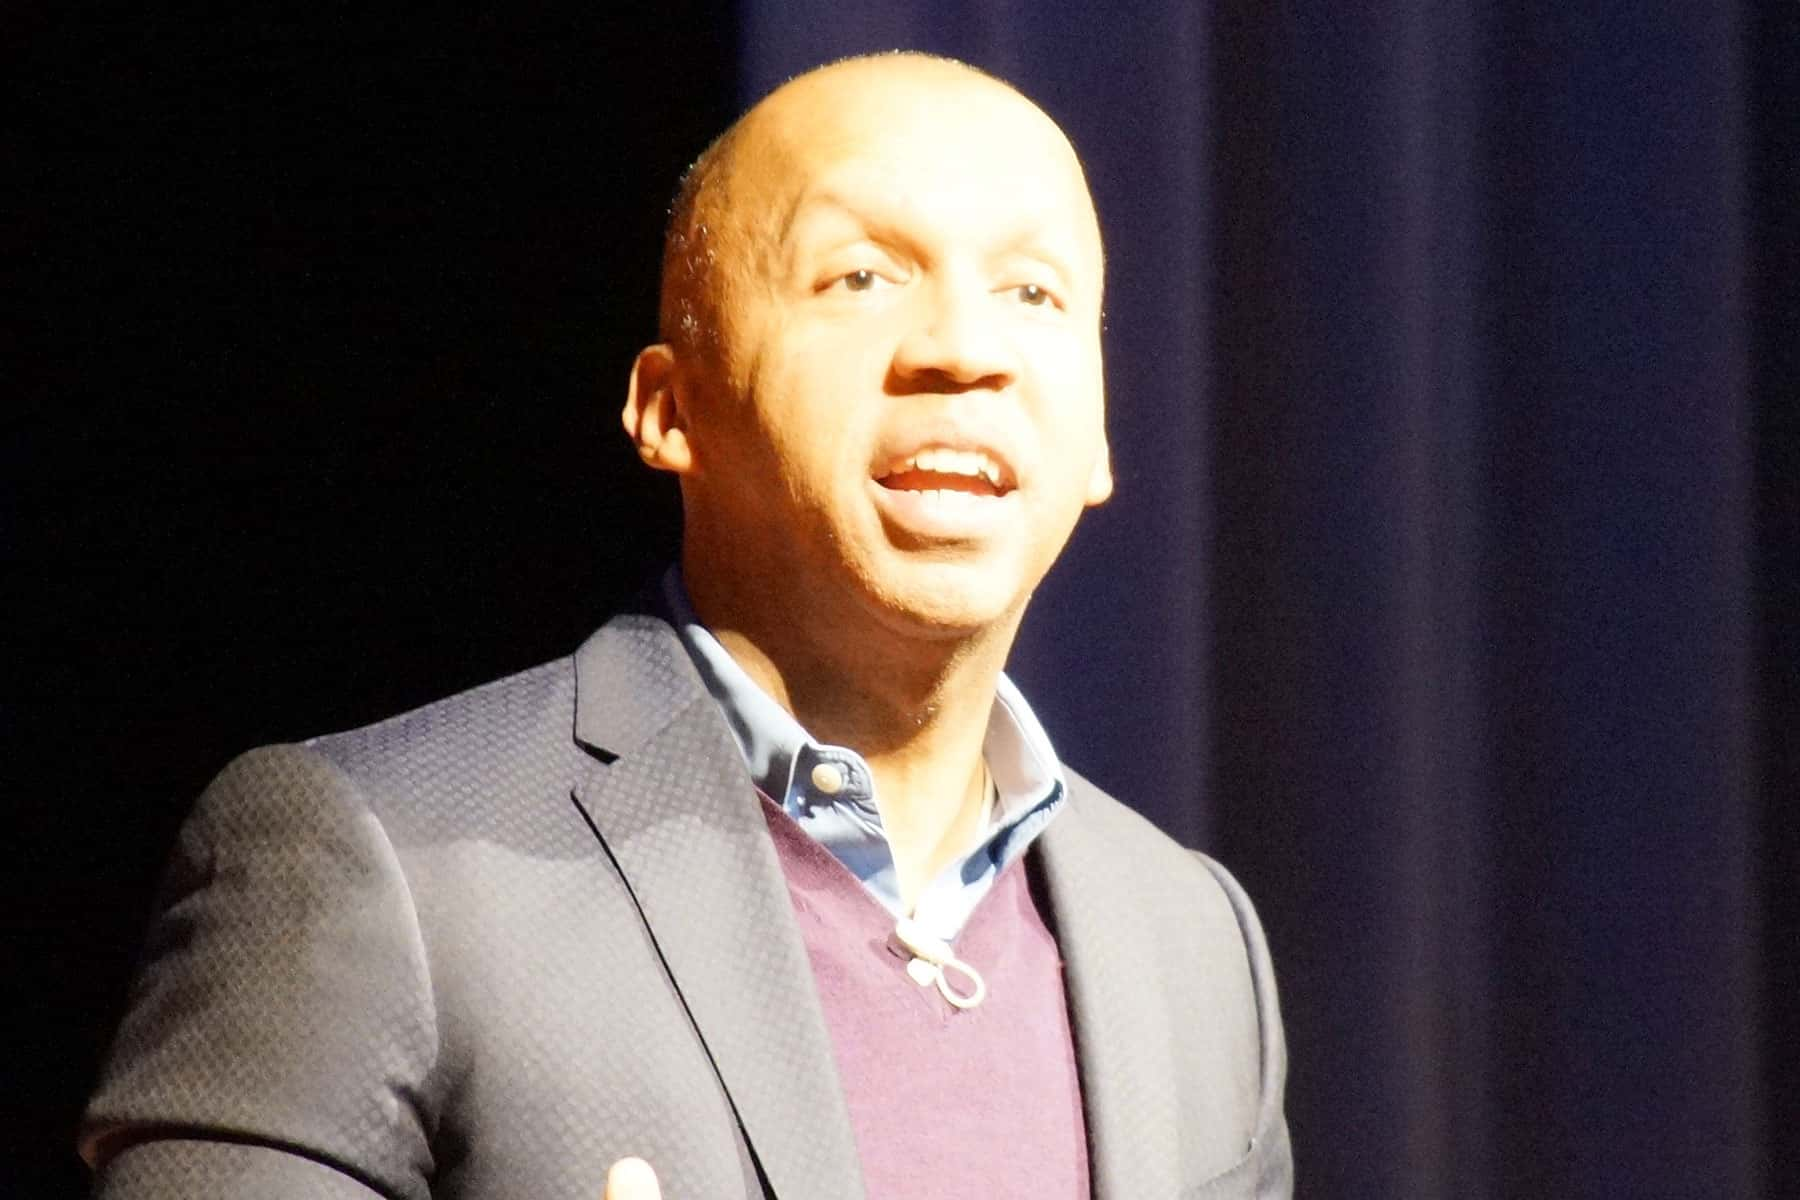 030916_BryanStevenson_459